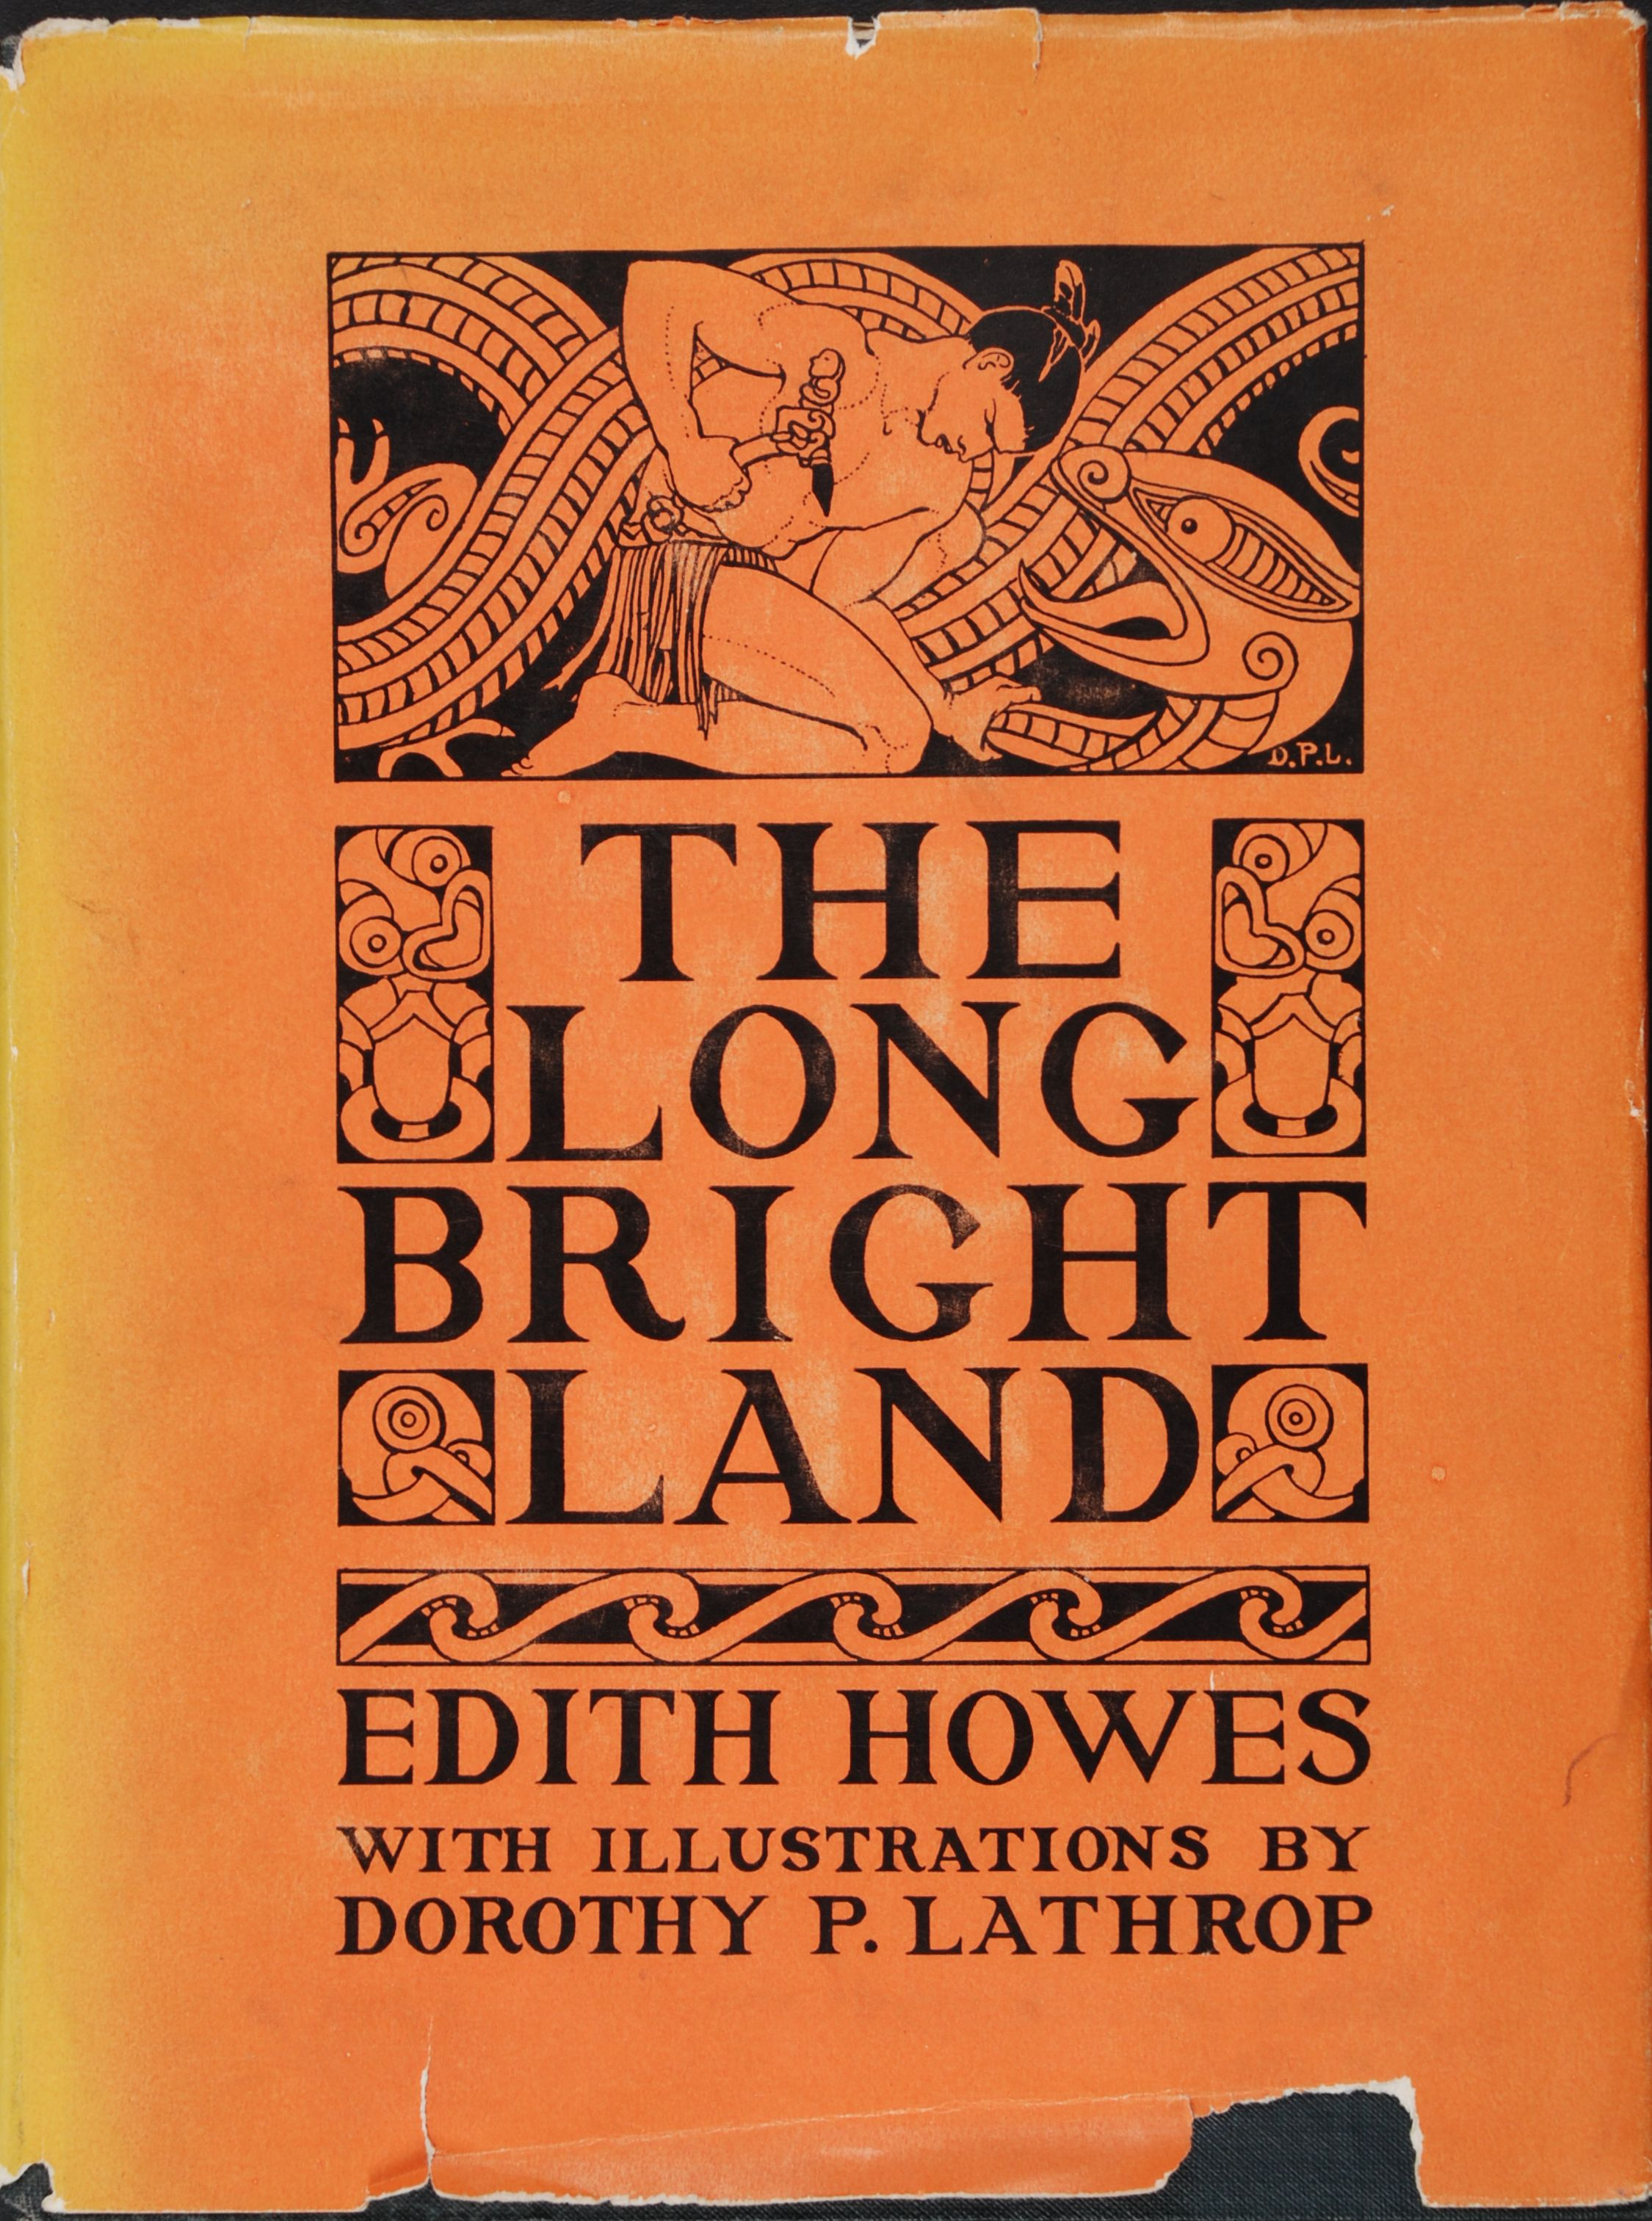 Edith Howes. The Long bright land : fairy tales from southern seas. Boston: Little, Brown and company, 1929.